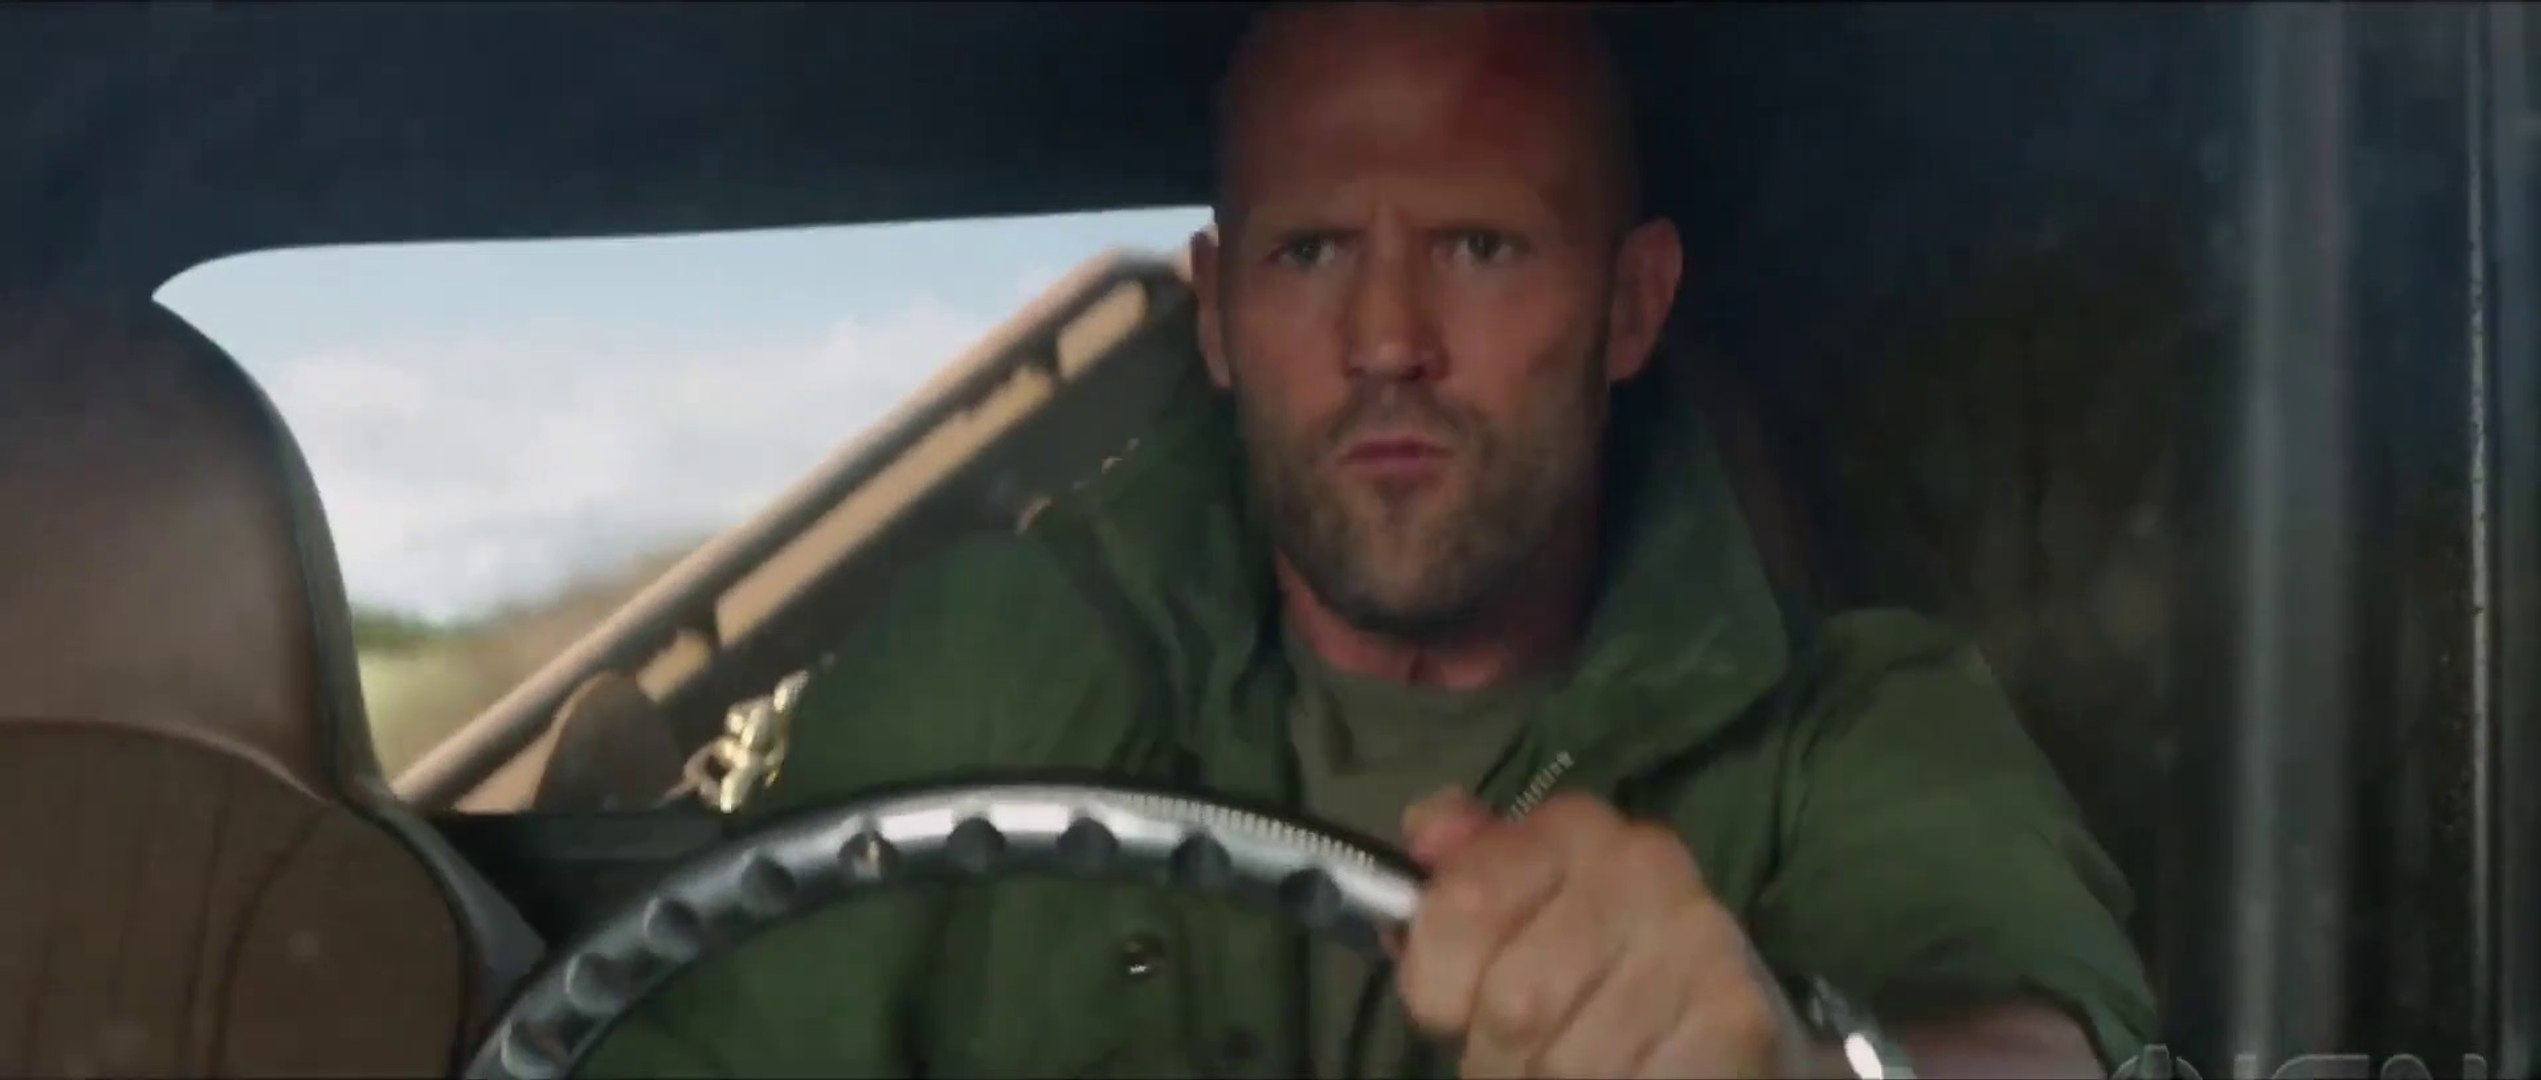 Hobbs & Shaw Movie Clip - Catching a Helicopter - Dwayne Johnson, Jason Statham